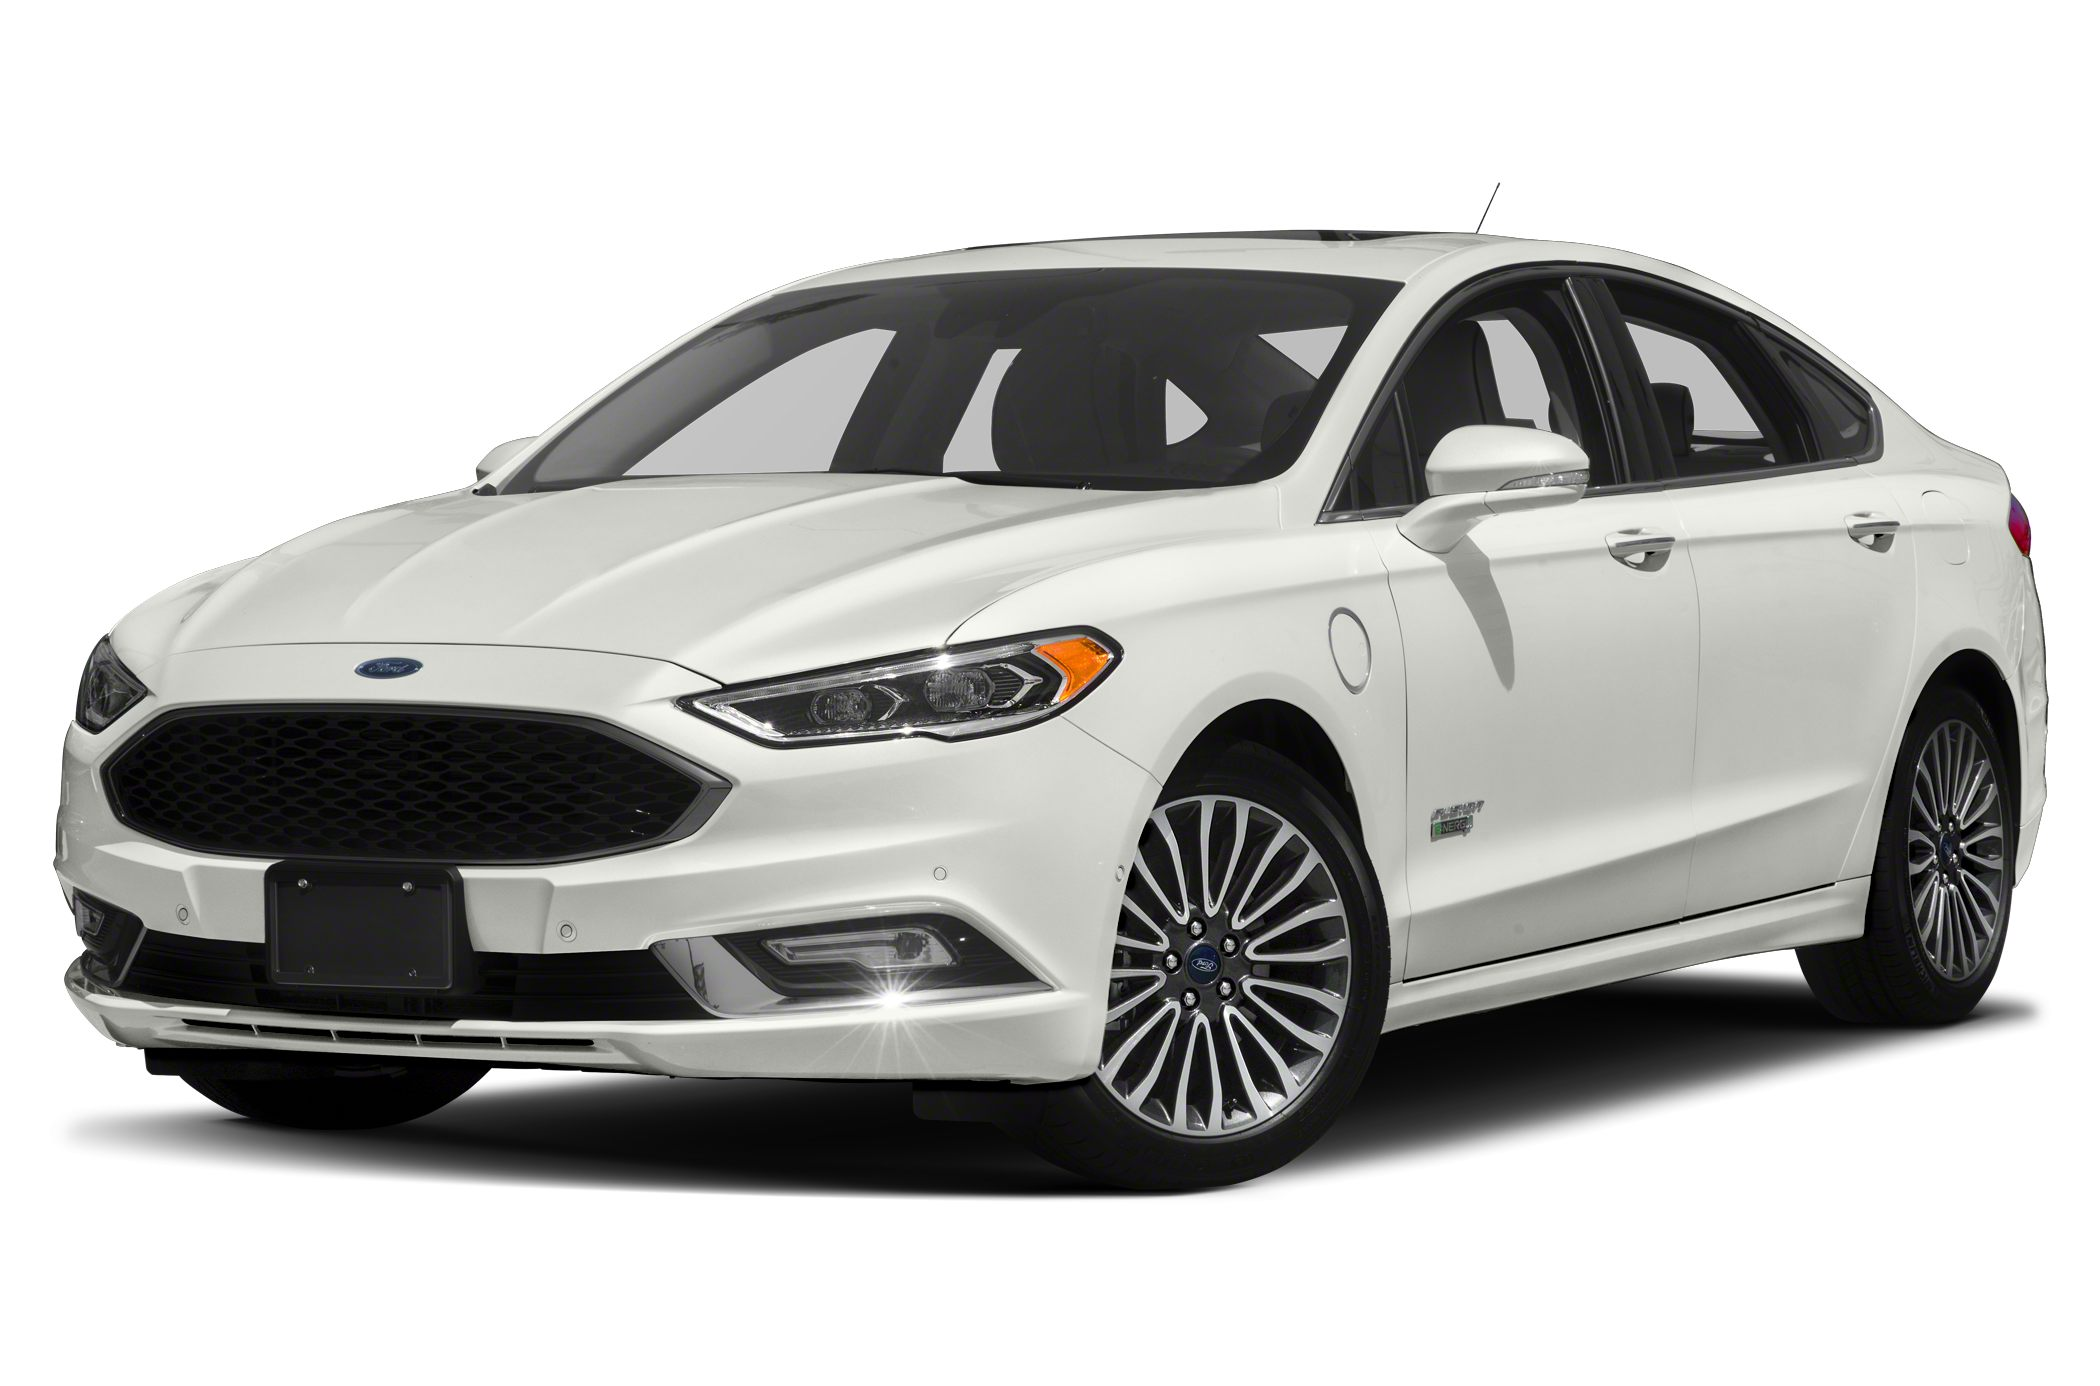 2017 ford fusion energi deals prices incentives leases overview carsdirect. Black Bedroom Furniture Sets. Home Design Ideas